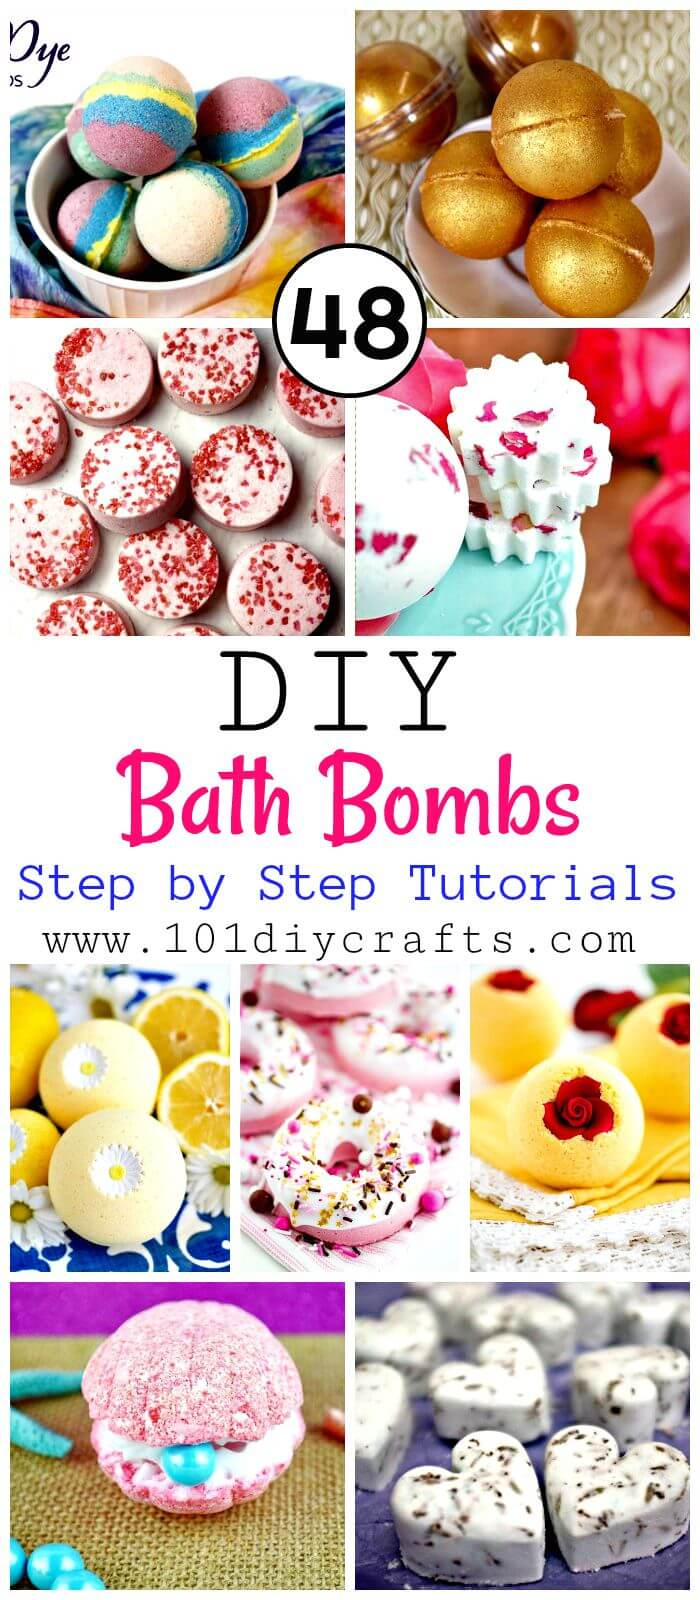 48 DIY Bath Bombs with Step by Step Tutorials